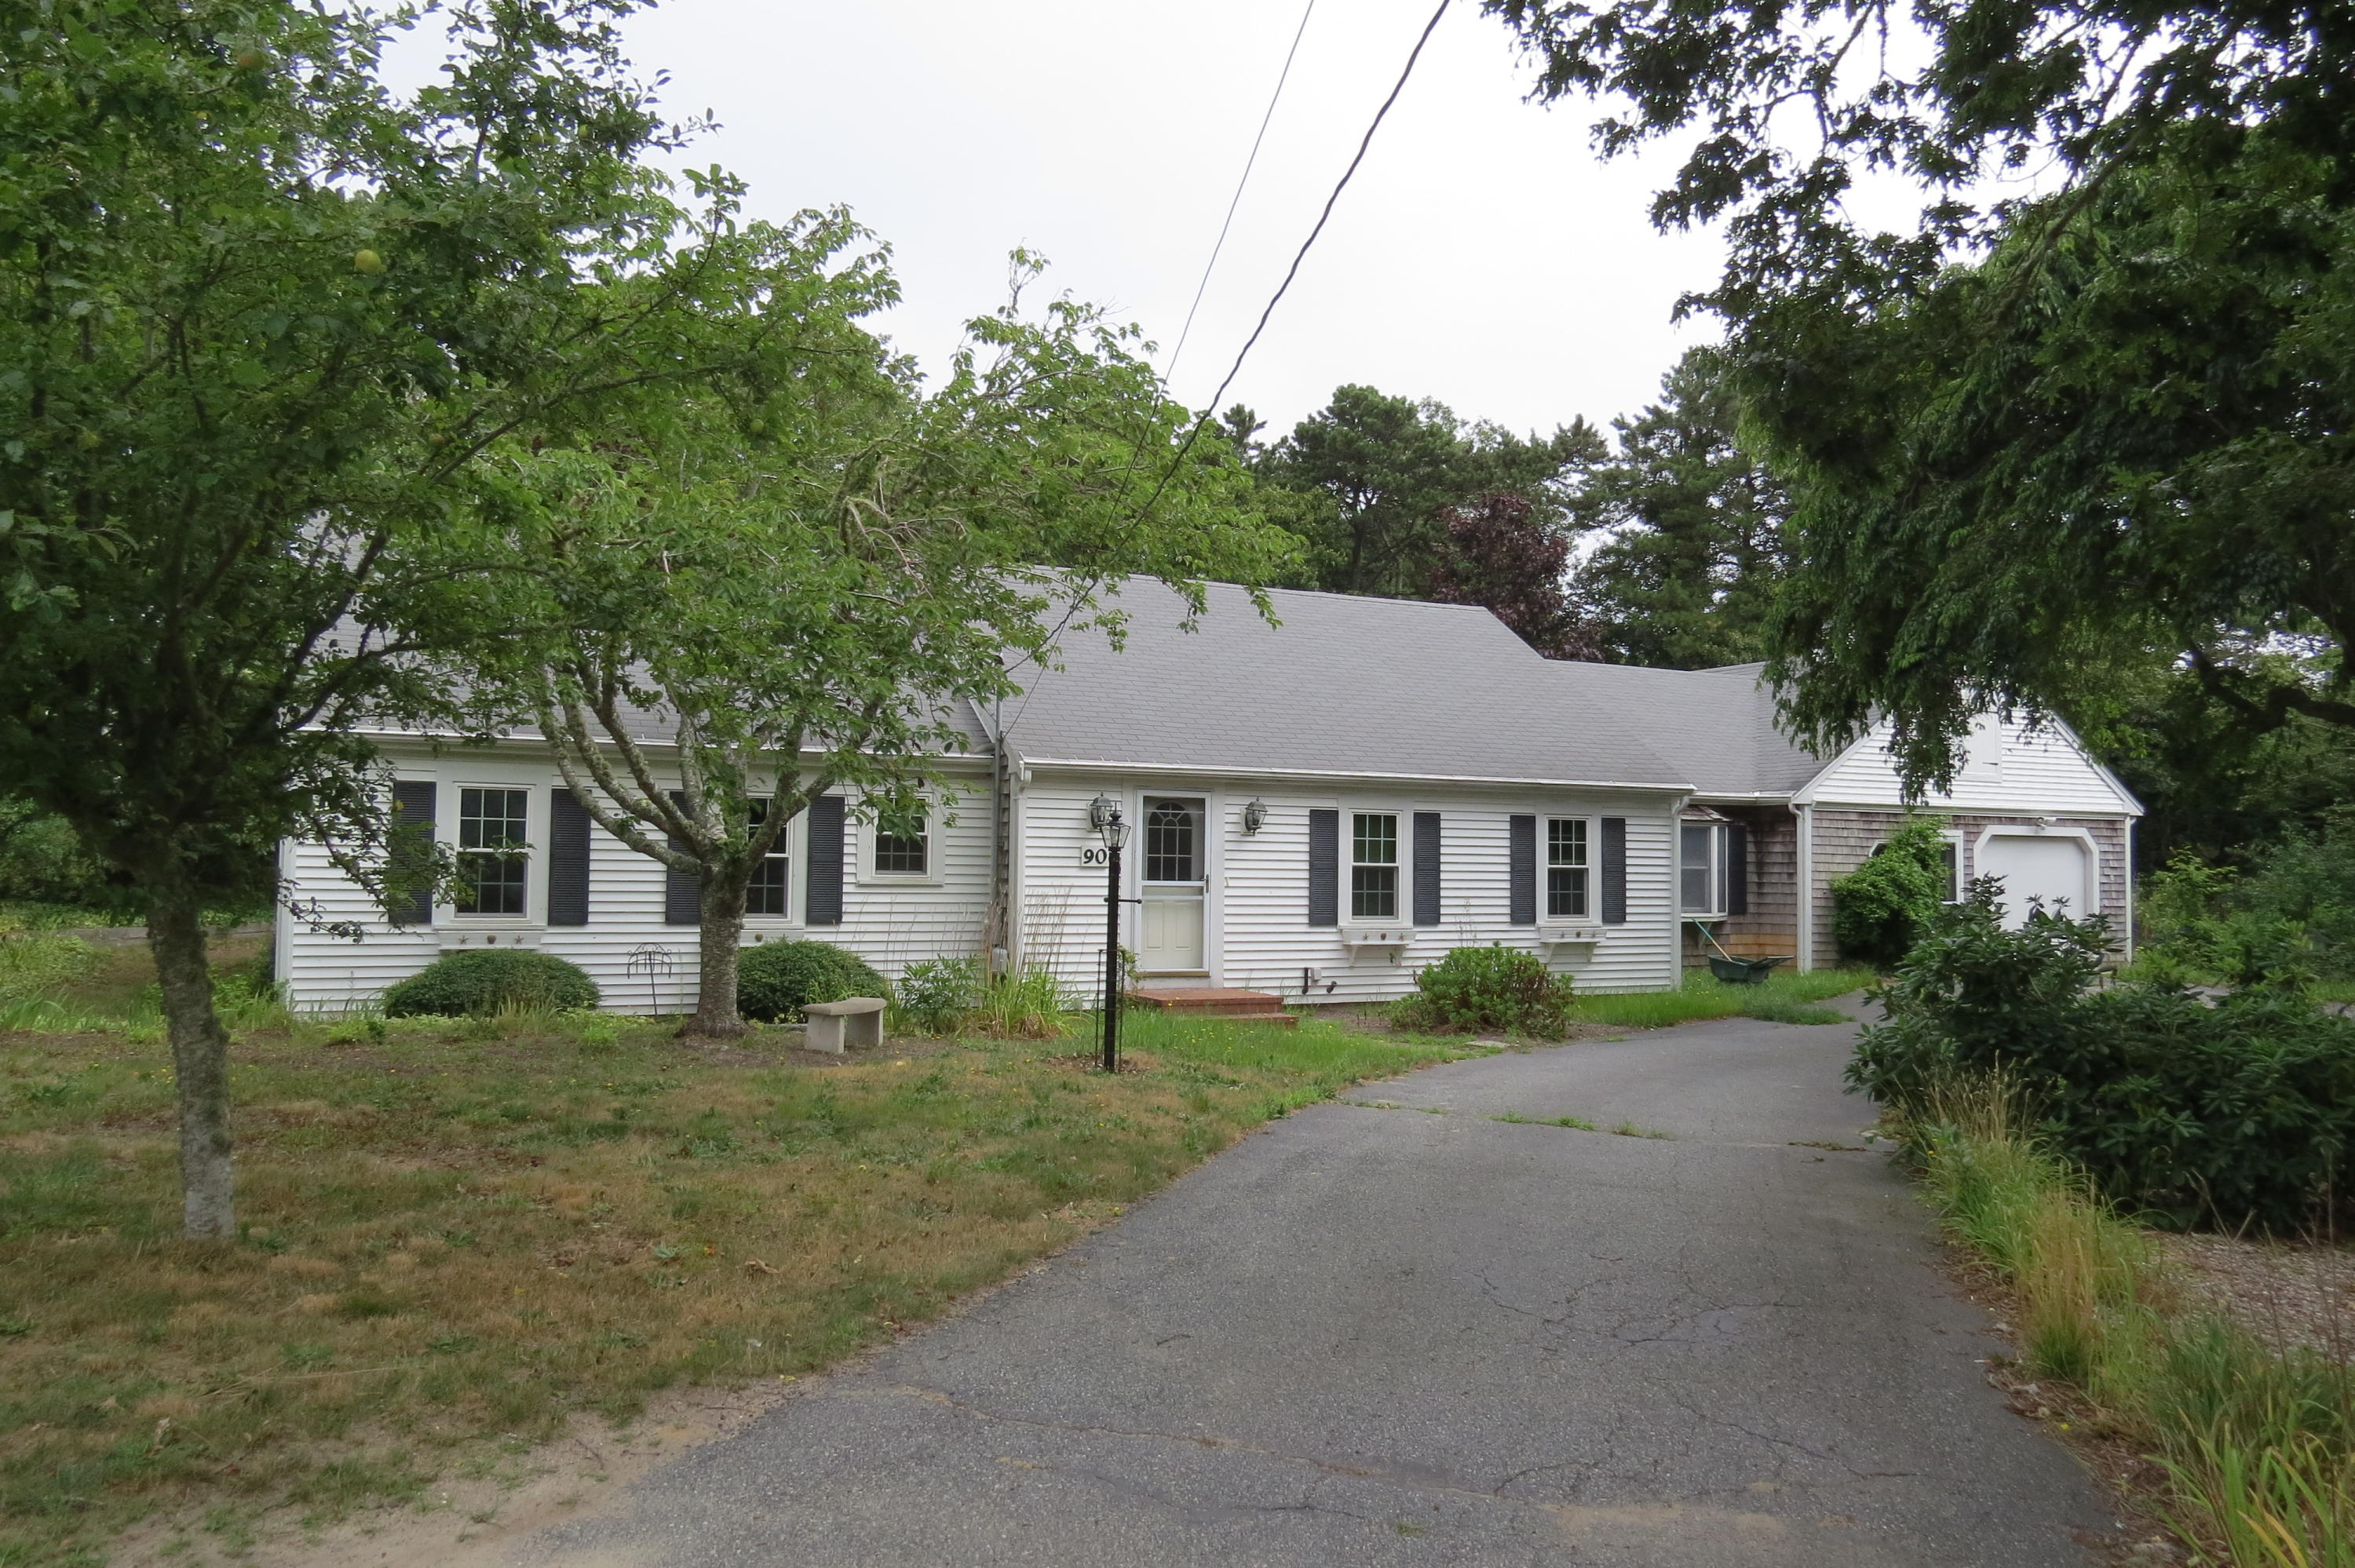 90-oval-road-chatham-ma-02633